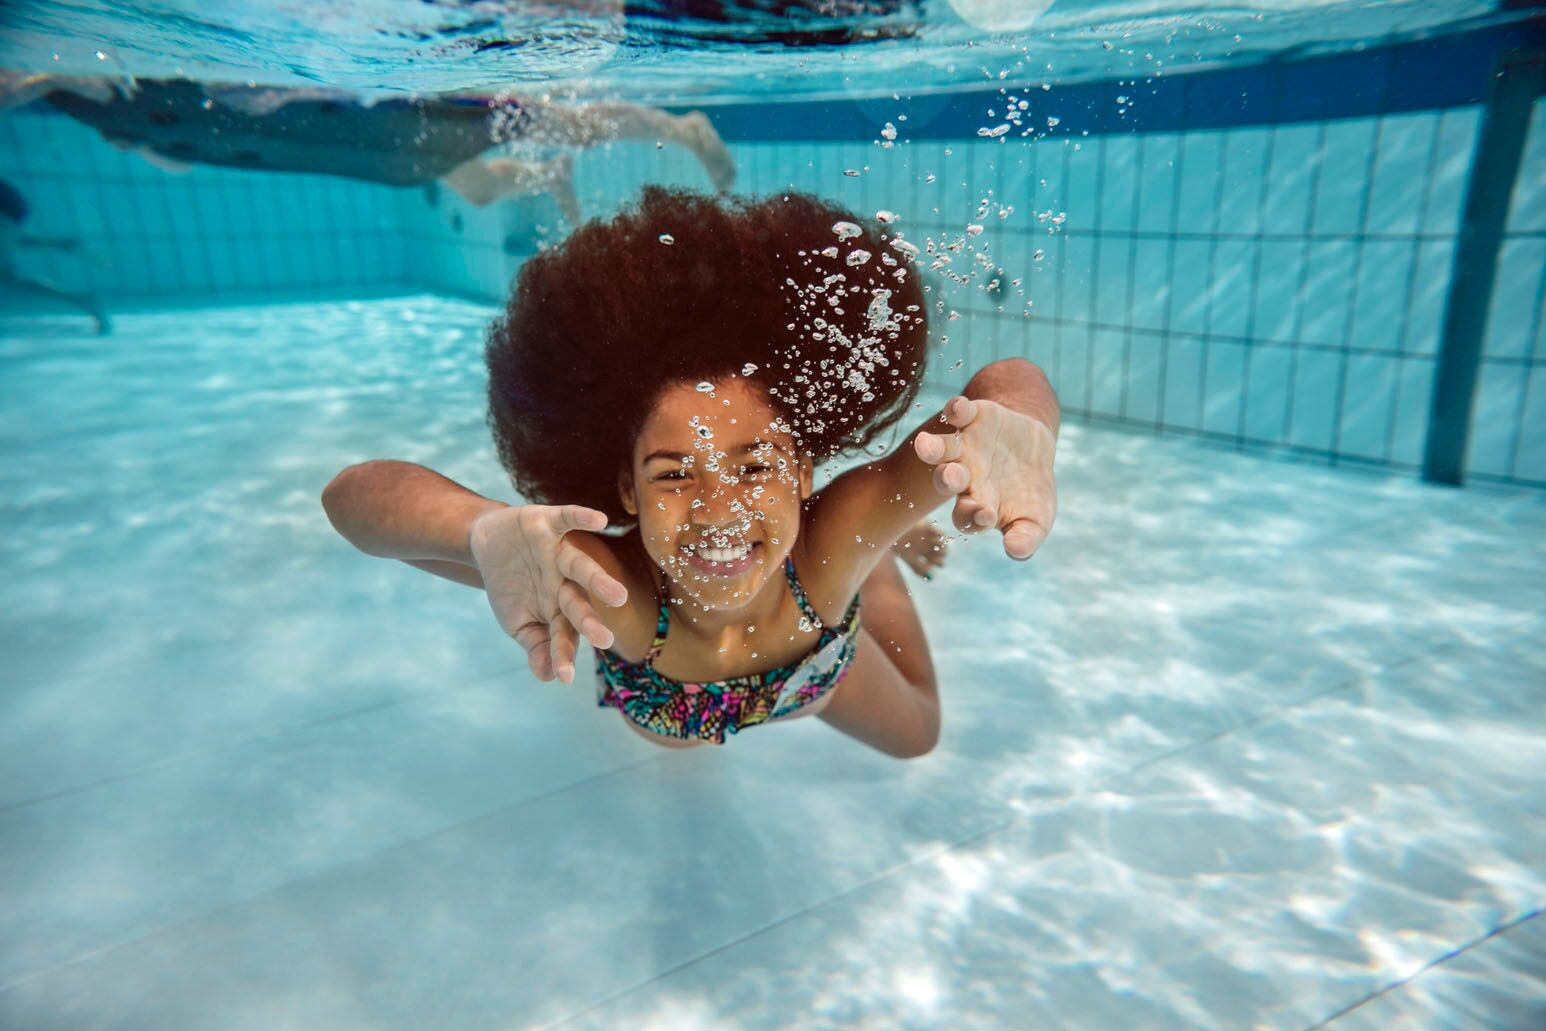 A girl swims under water